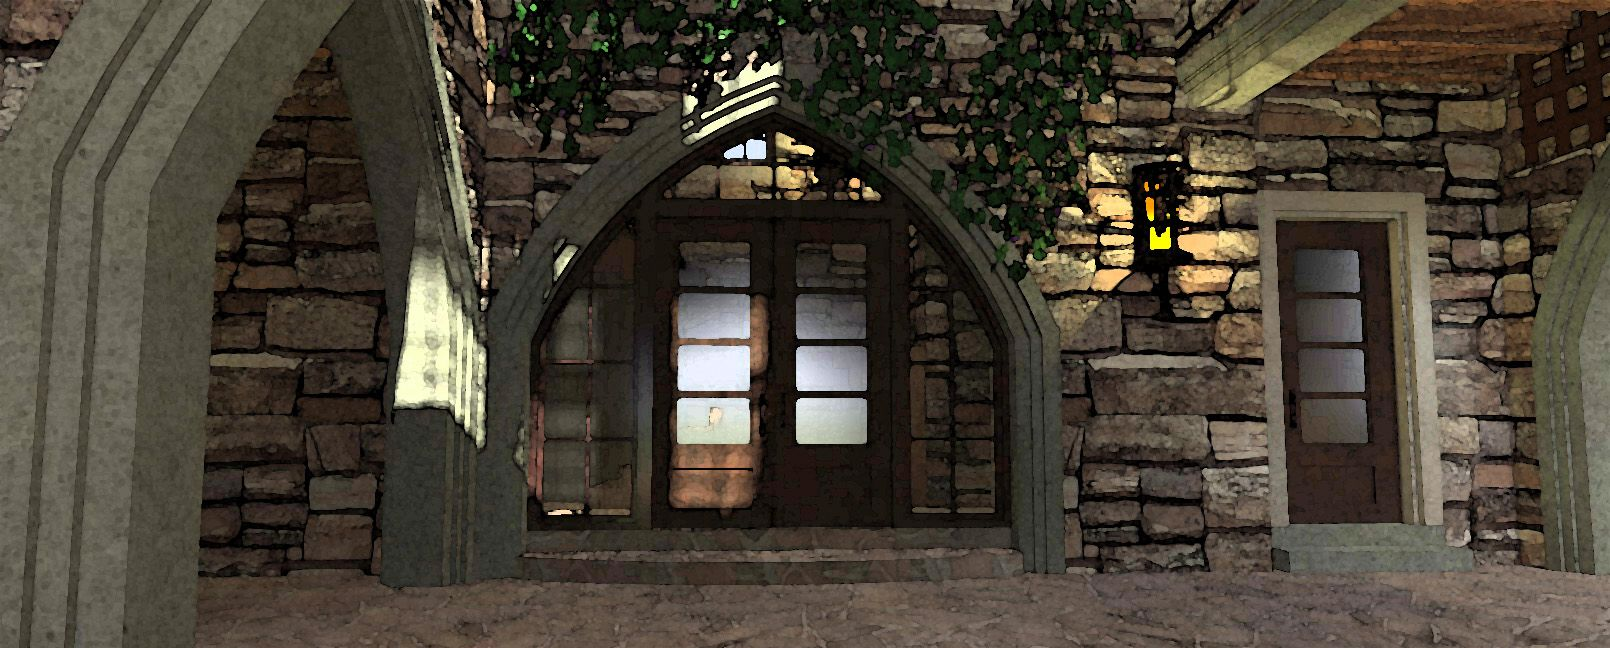 My Husbands Dream Game Of Thrones Style Home Castle House Castle Plans House With Porch